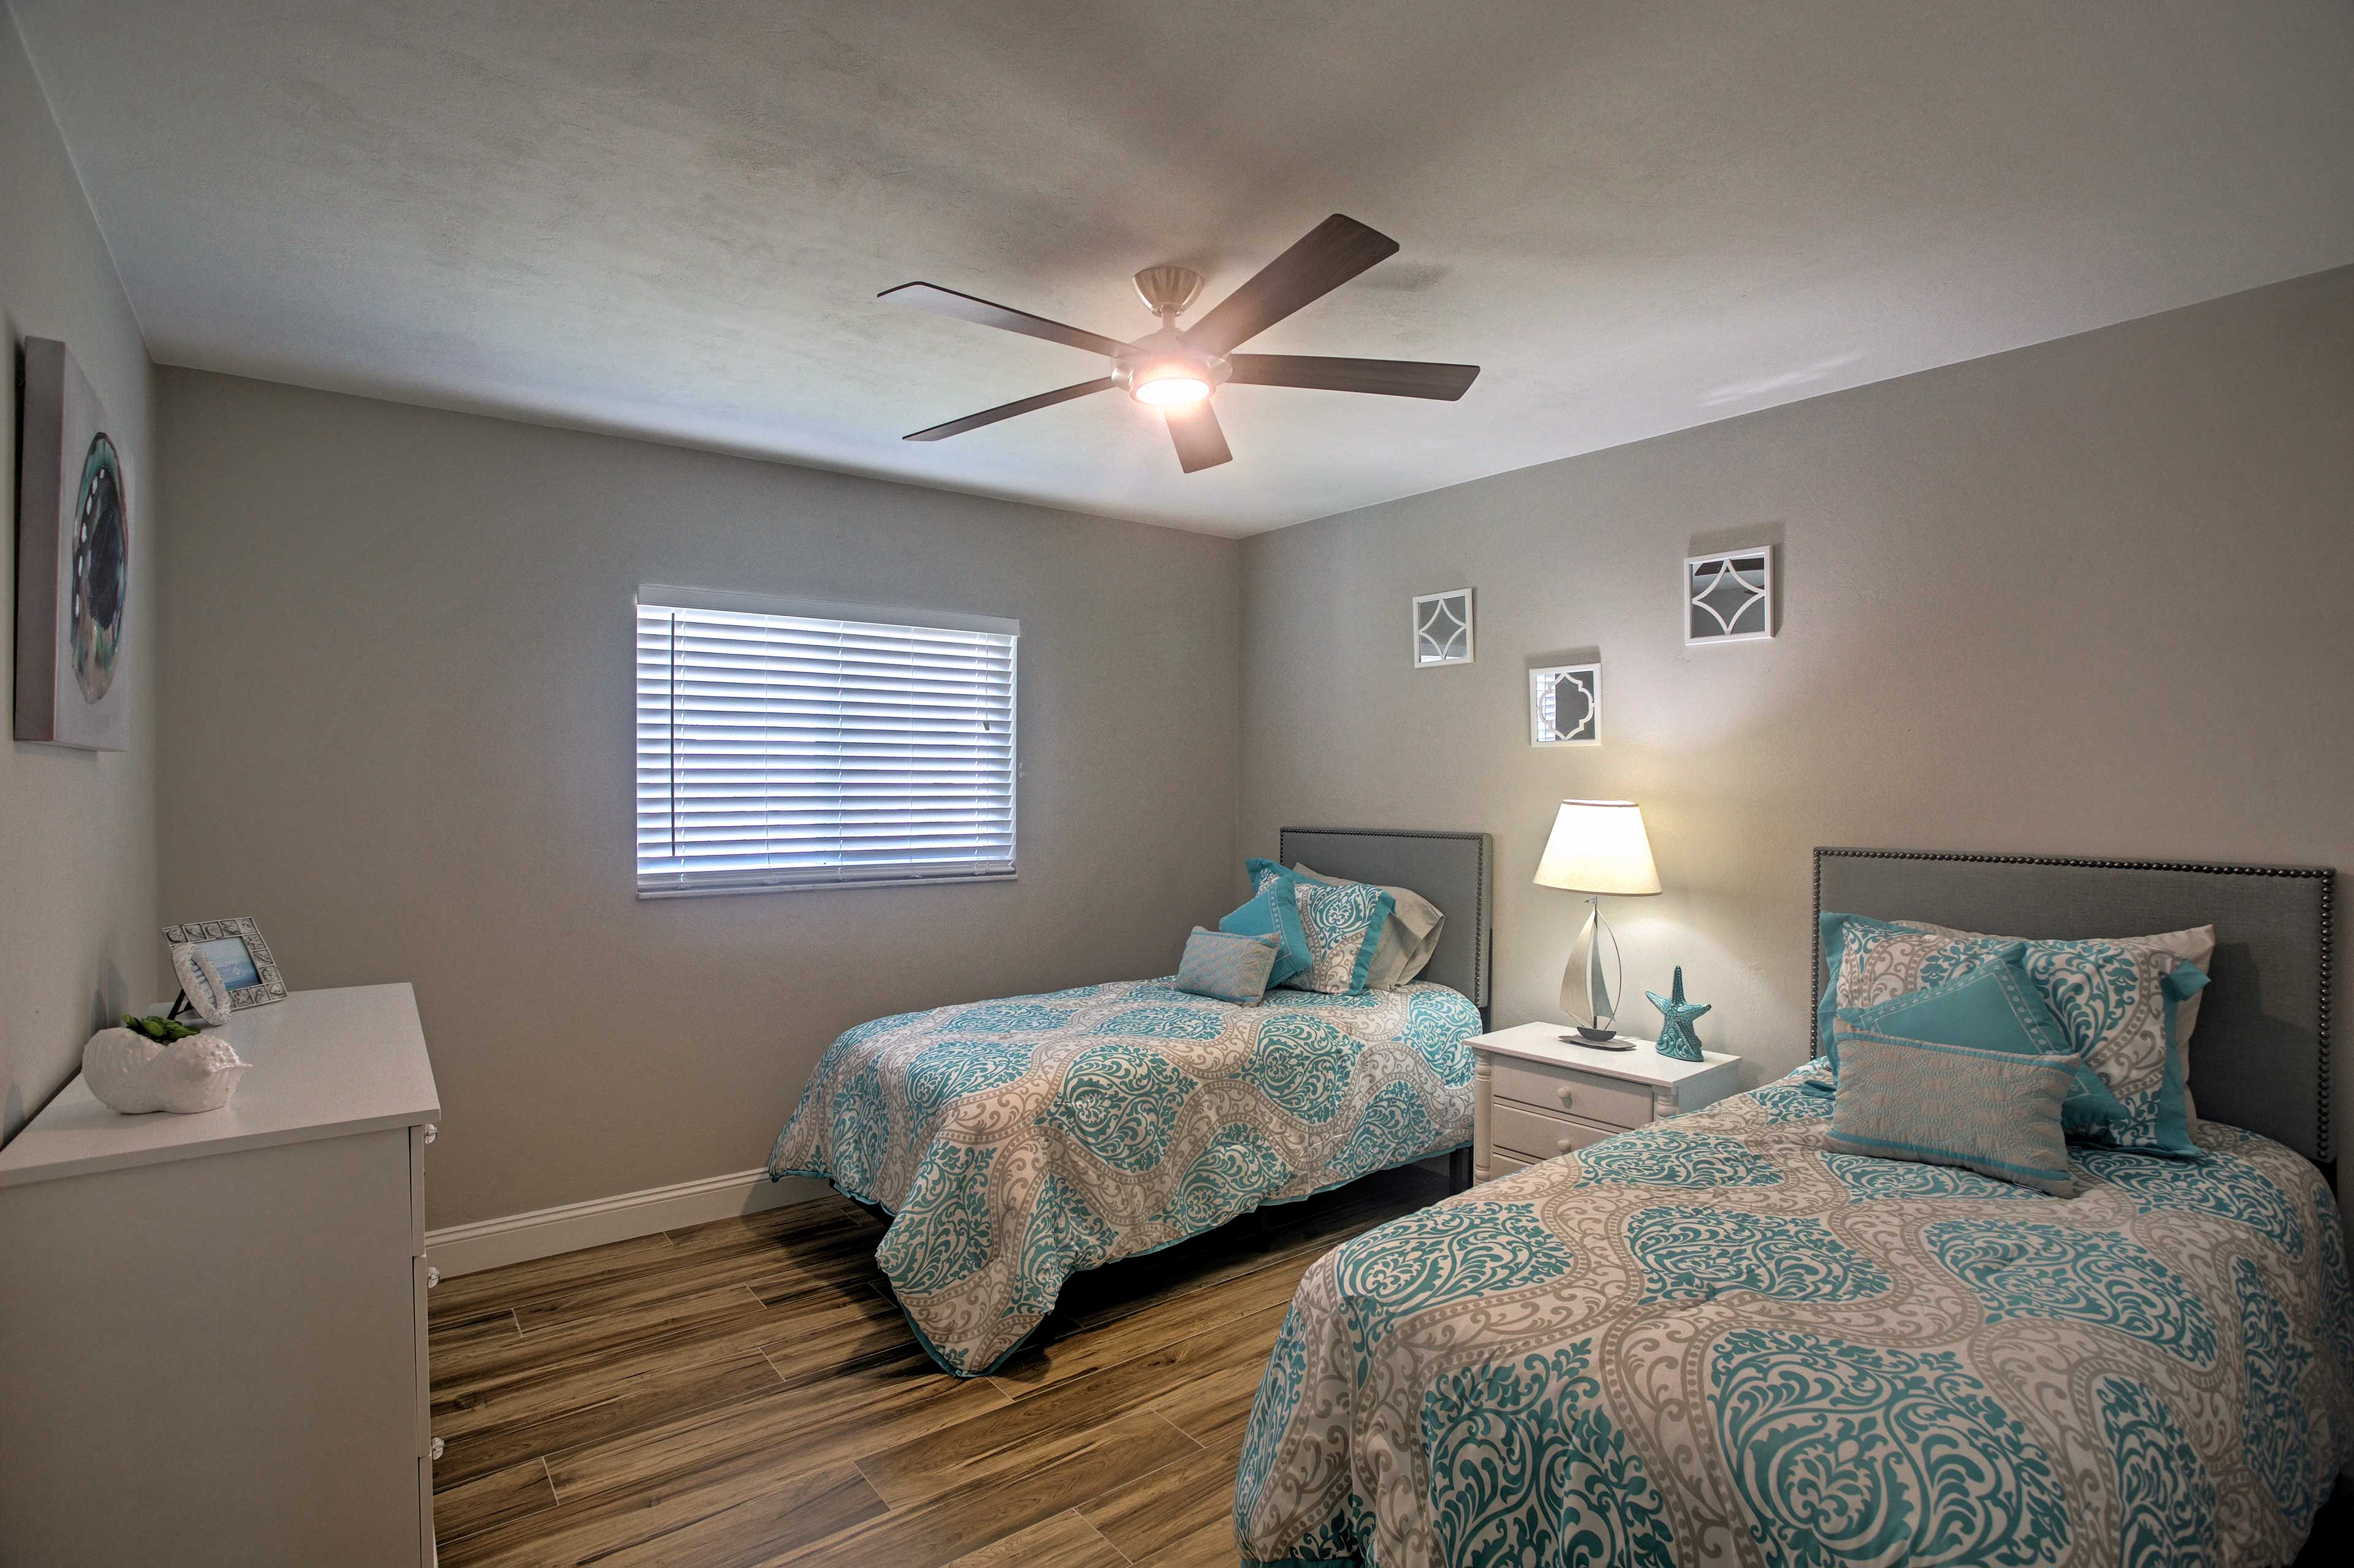 Those staying in this last bedroom will enjoy the comforts of 2 twin beds.